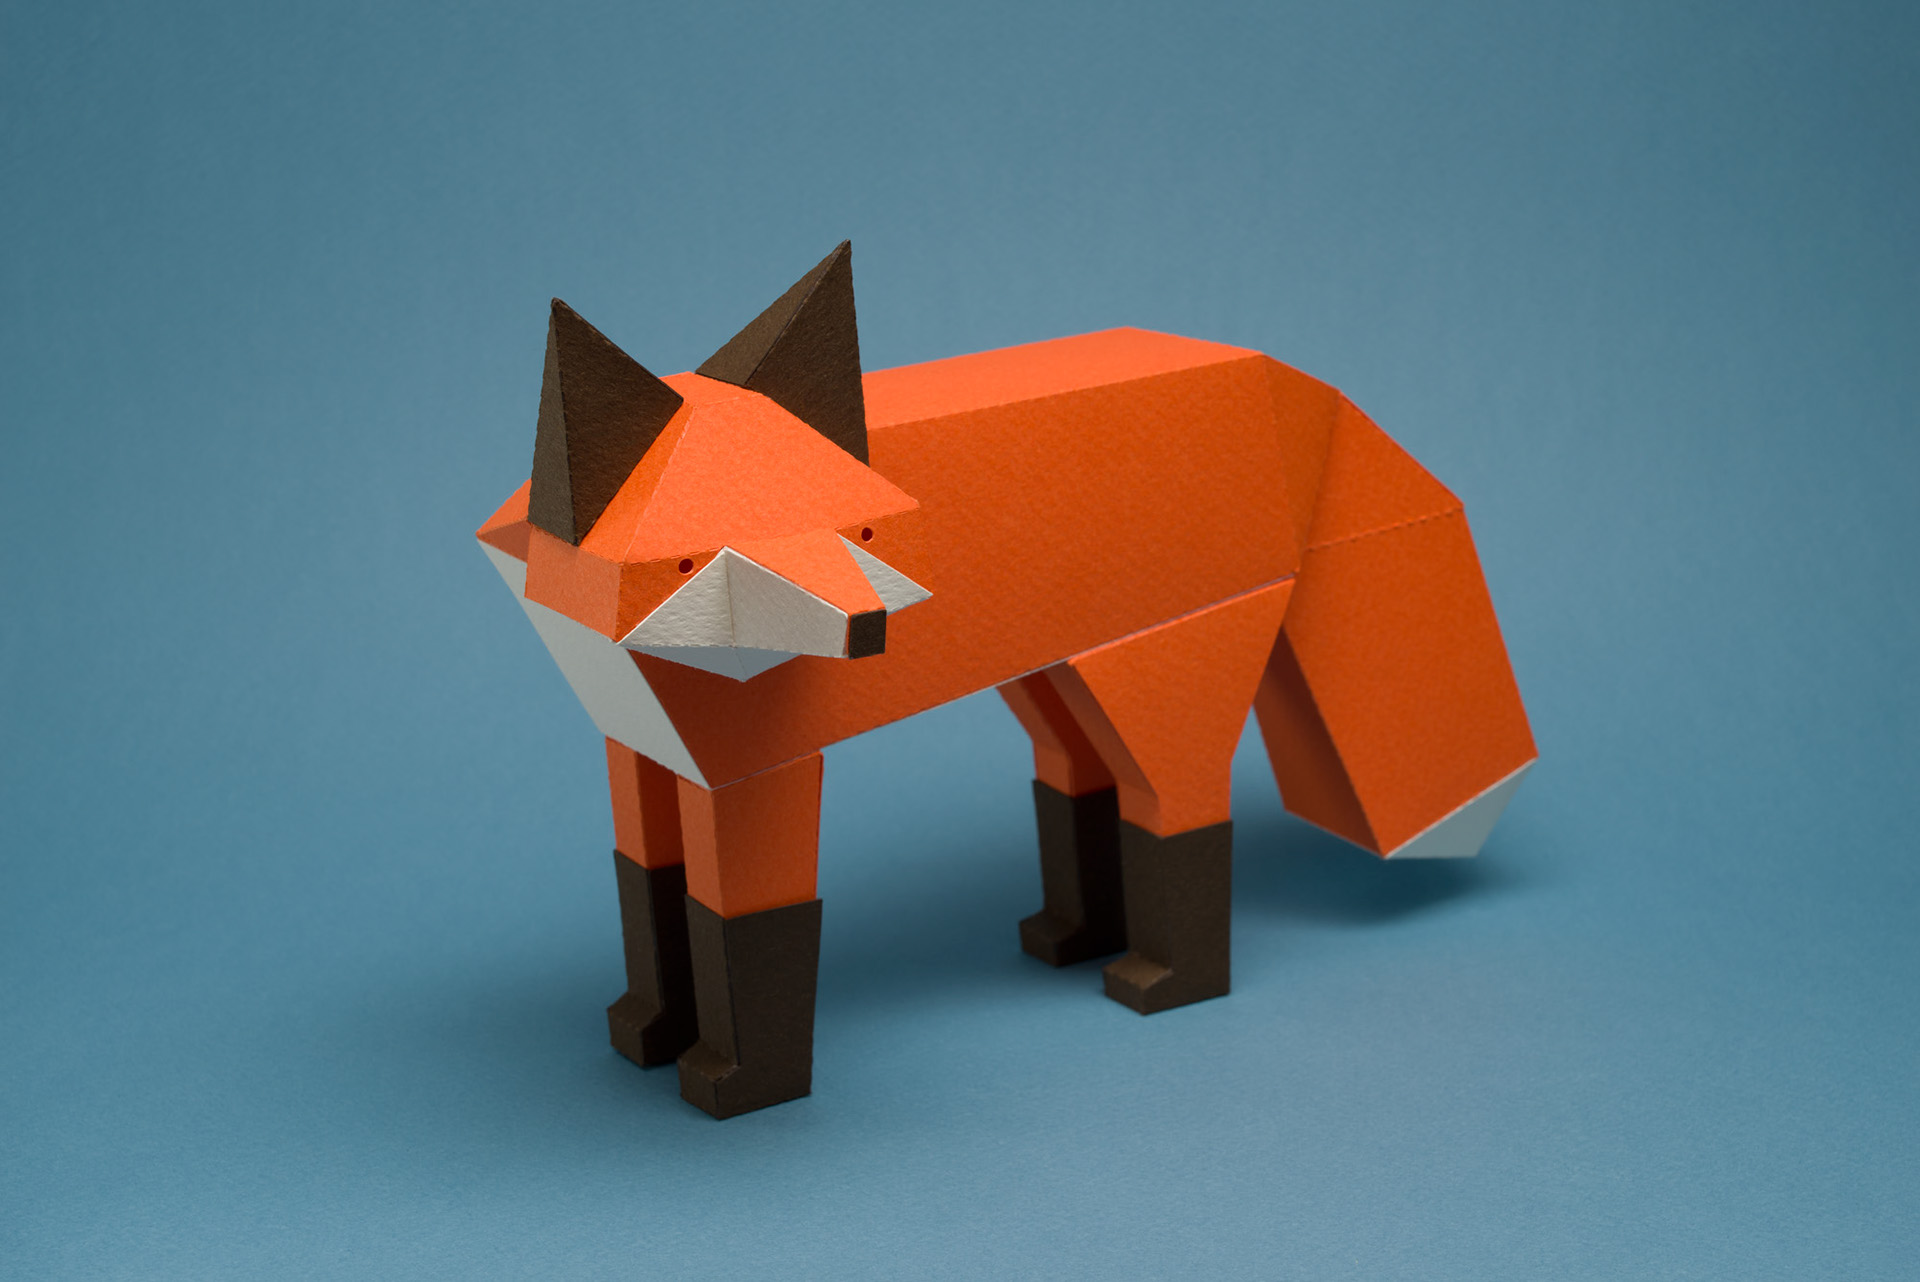 Cute Animals in Cardboard to Assemble (11 pics)